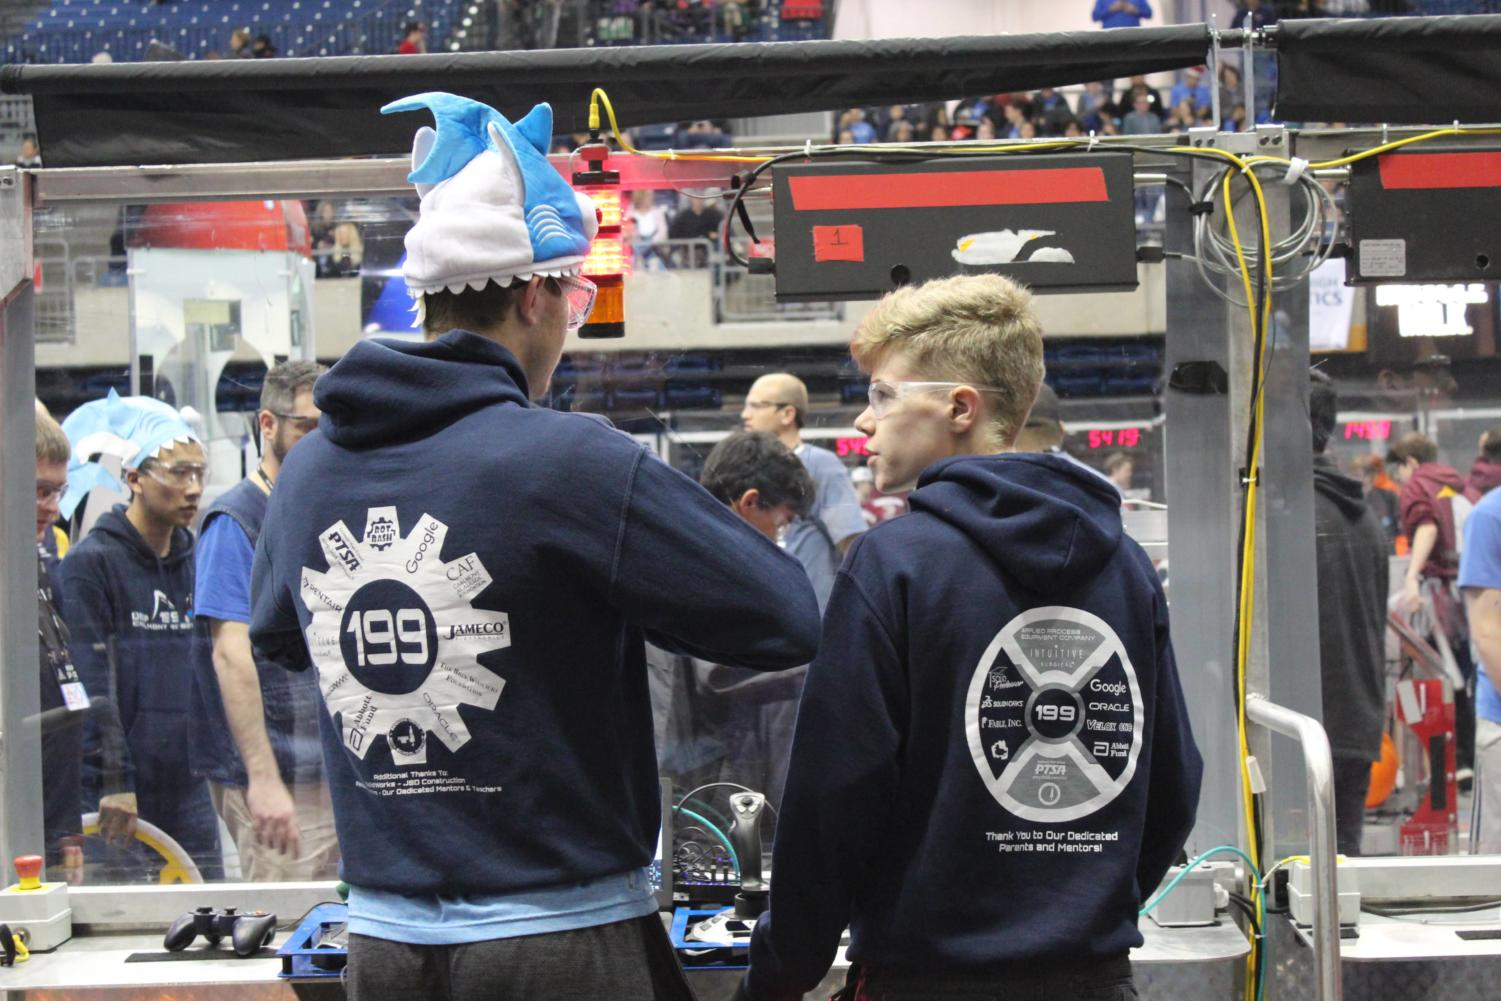 Two Robotics team members discuss strategies before participating in their competition.